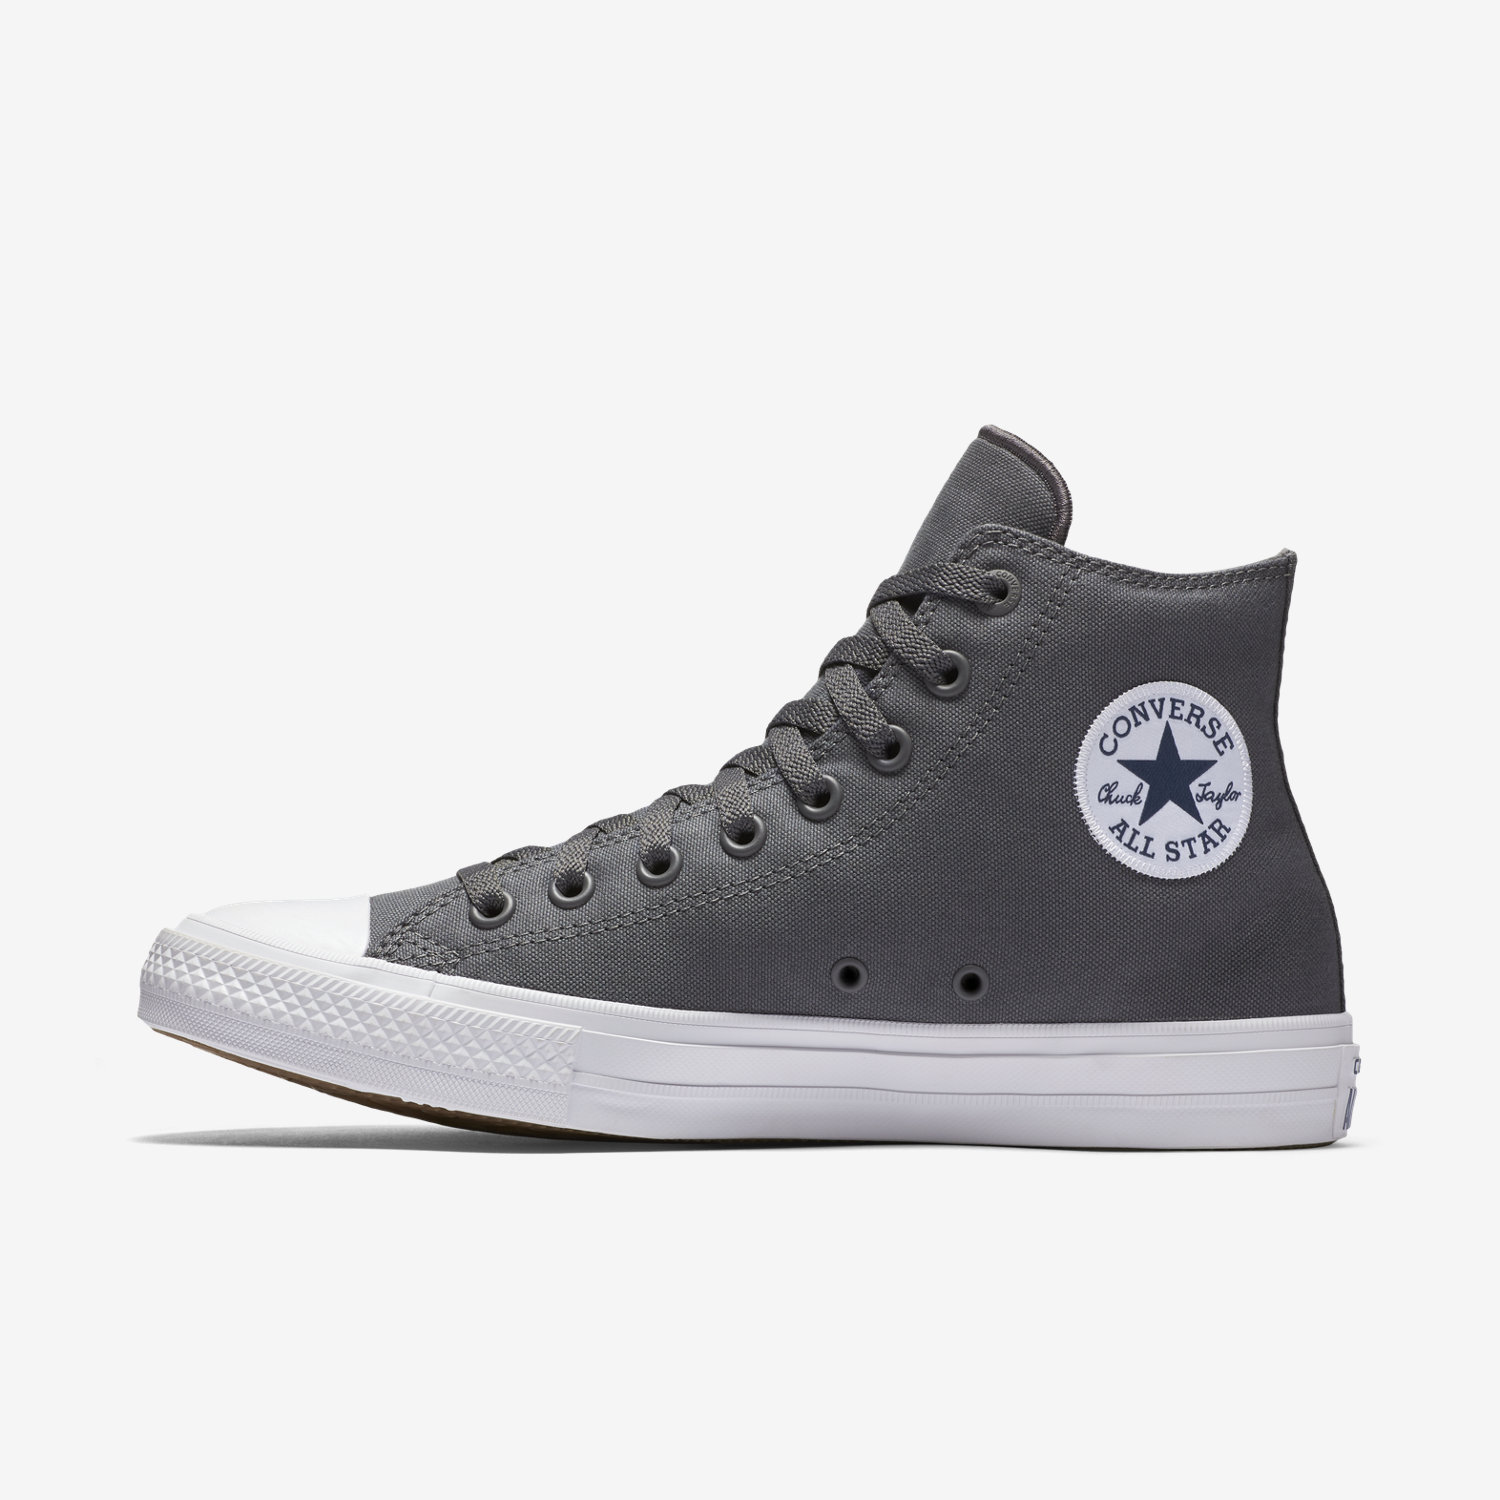 converse chuck taylor. Black Bedroom Furniture Sets. Home Design Ideas